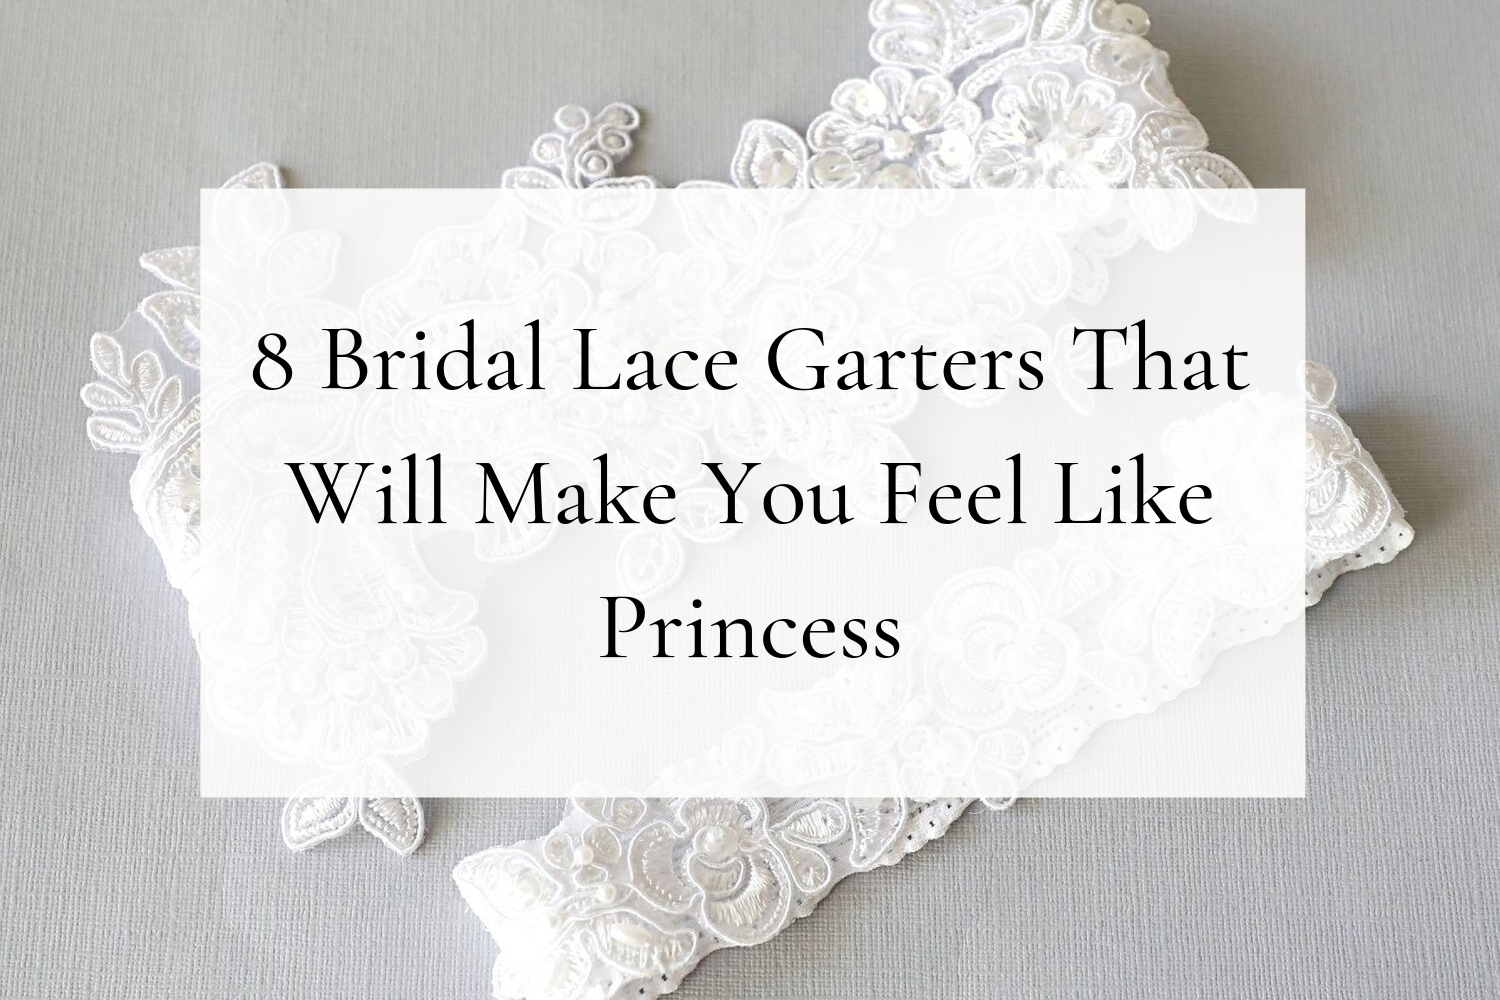 8 Bridal Lace Garters That Will Make You Feel Like Princess